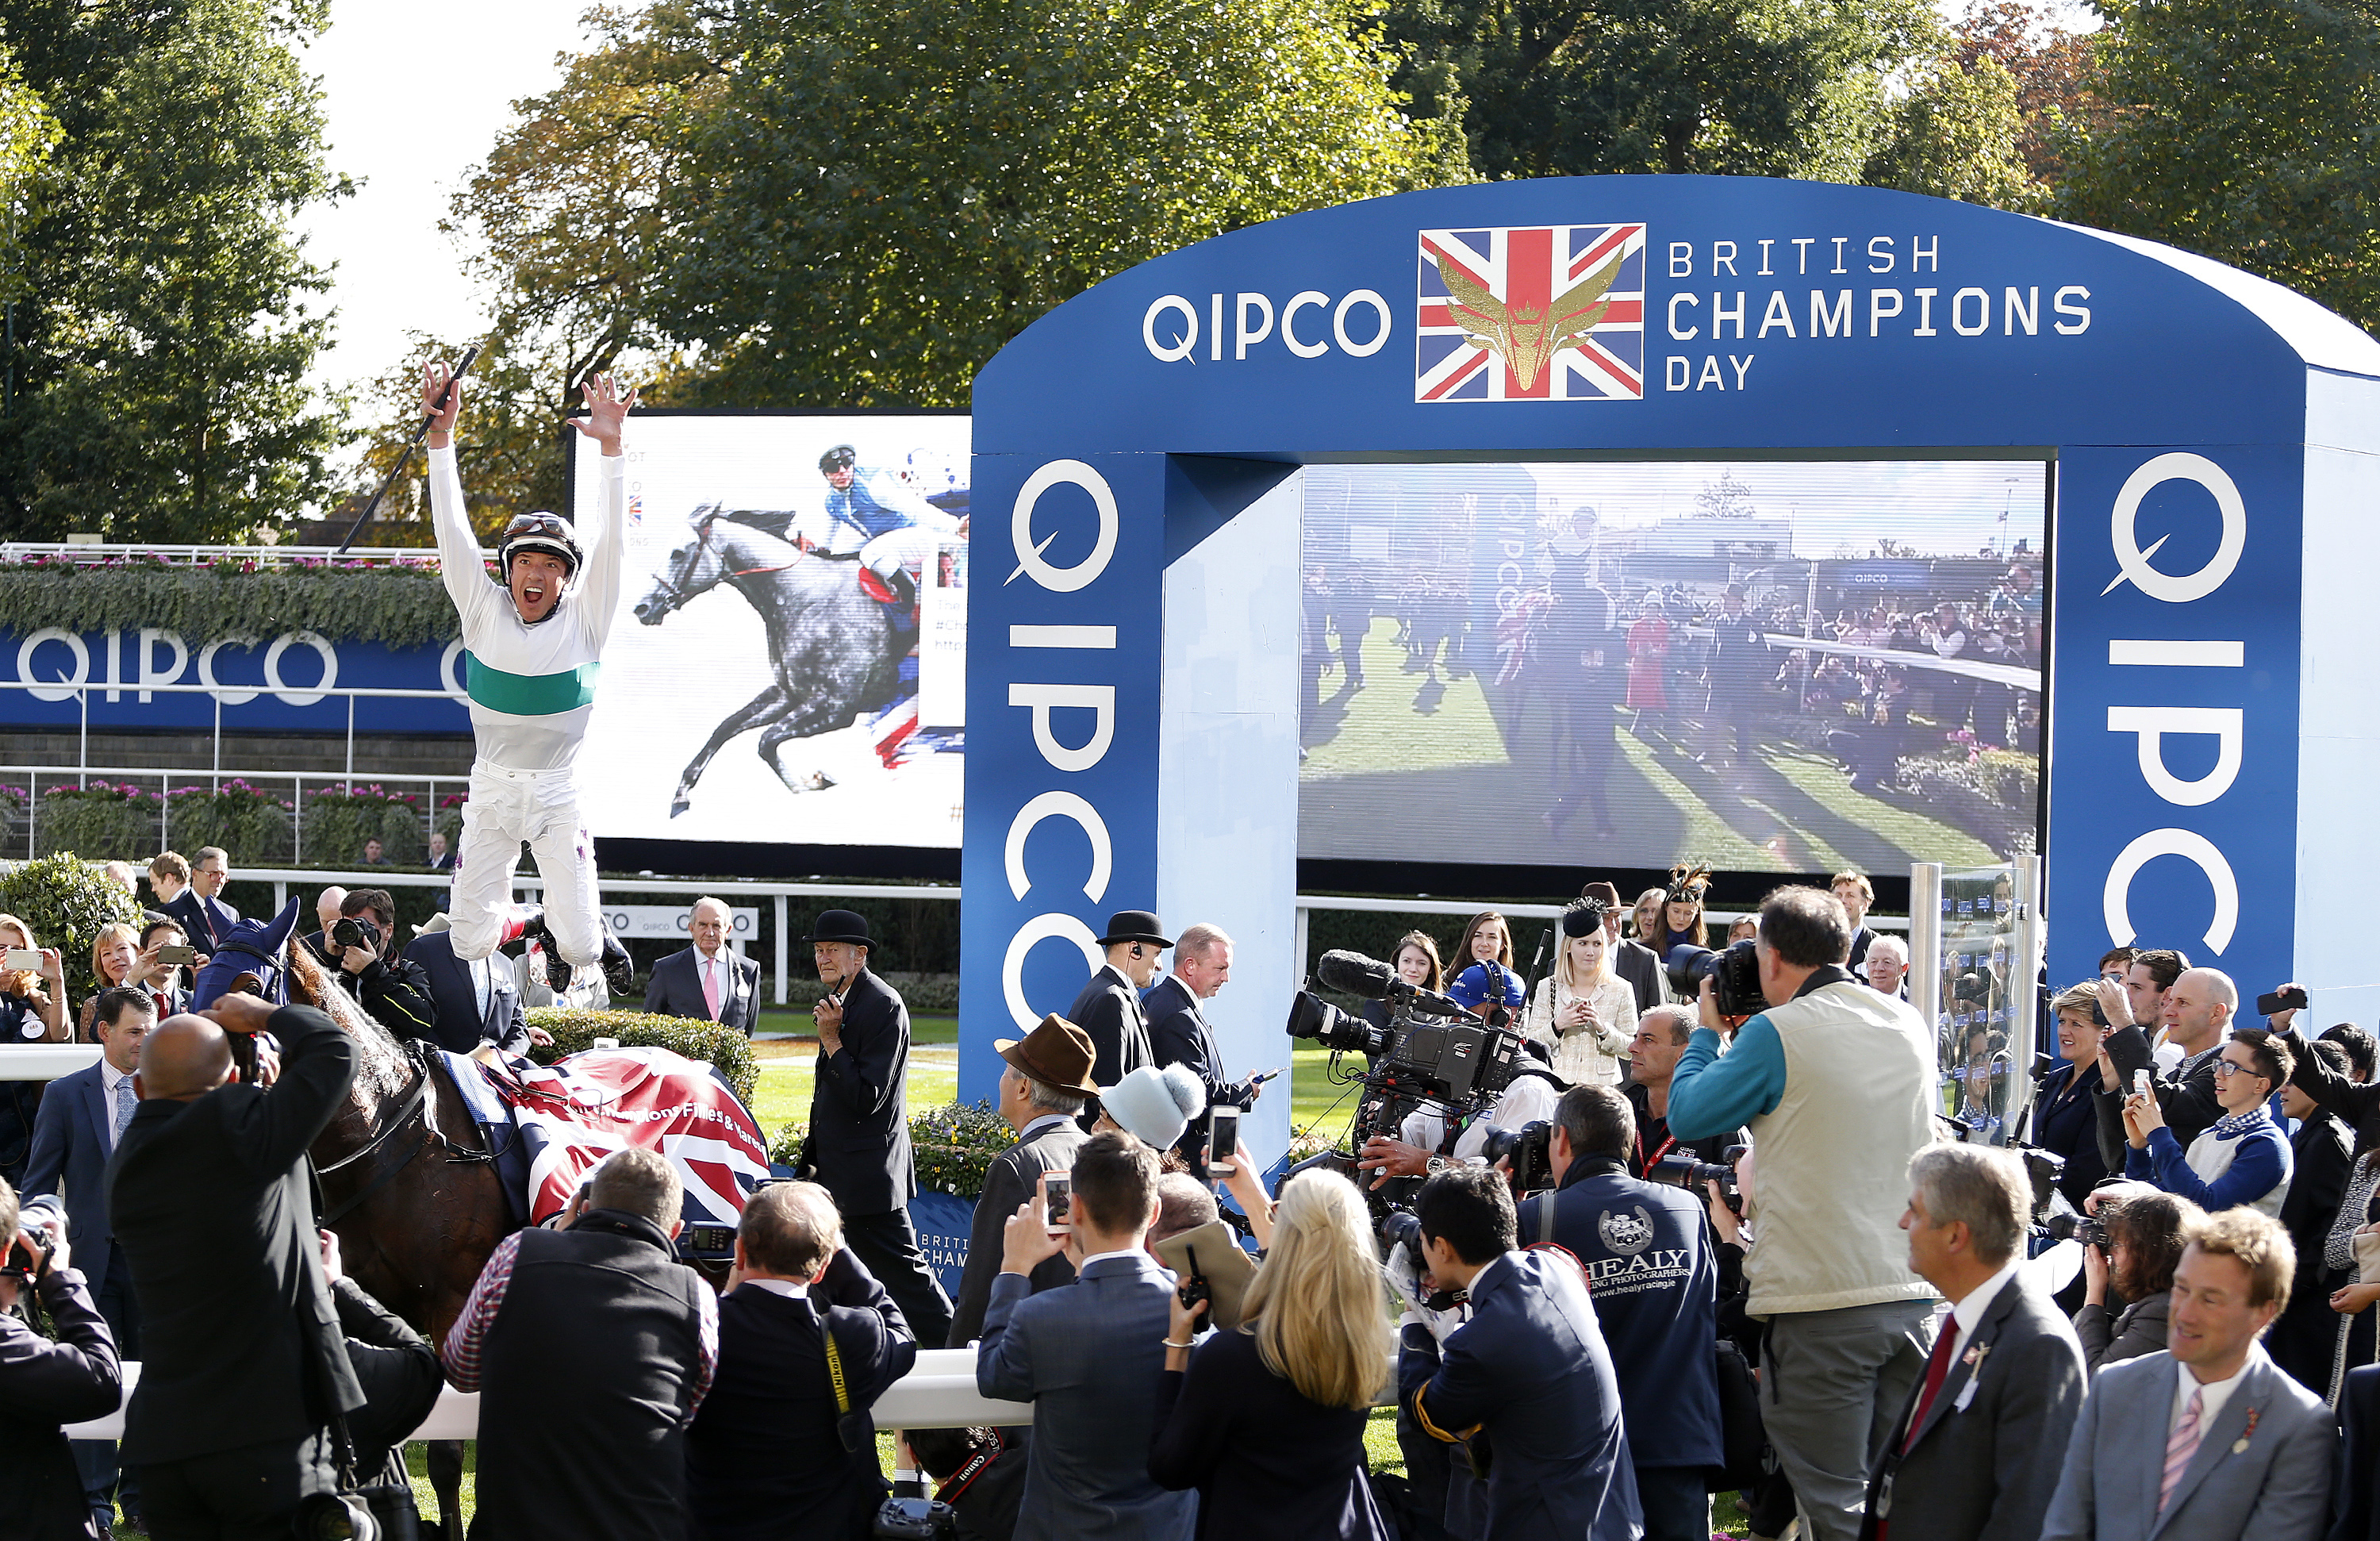 Frankie Dettori leaps from Journey after winning The Qipco British Champions Fillies Mares Stakes at Ascot Racecourse © Alan Crowhurst/Getty Images